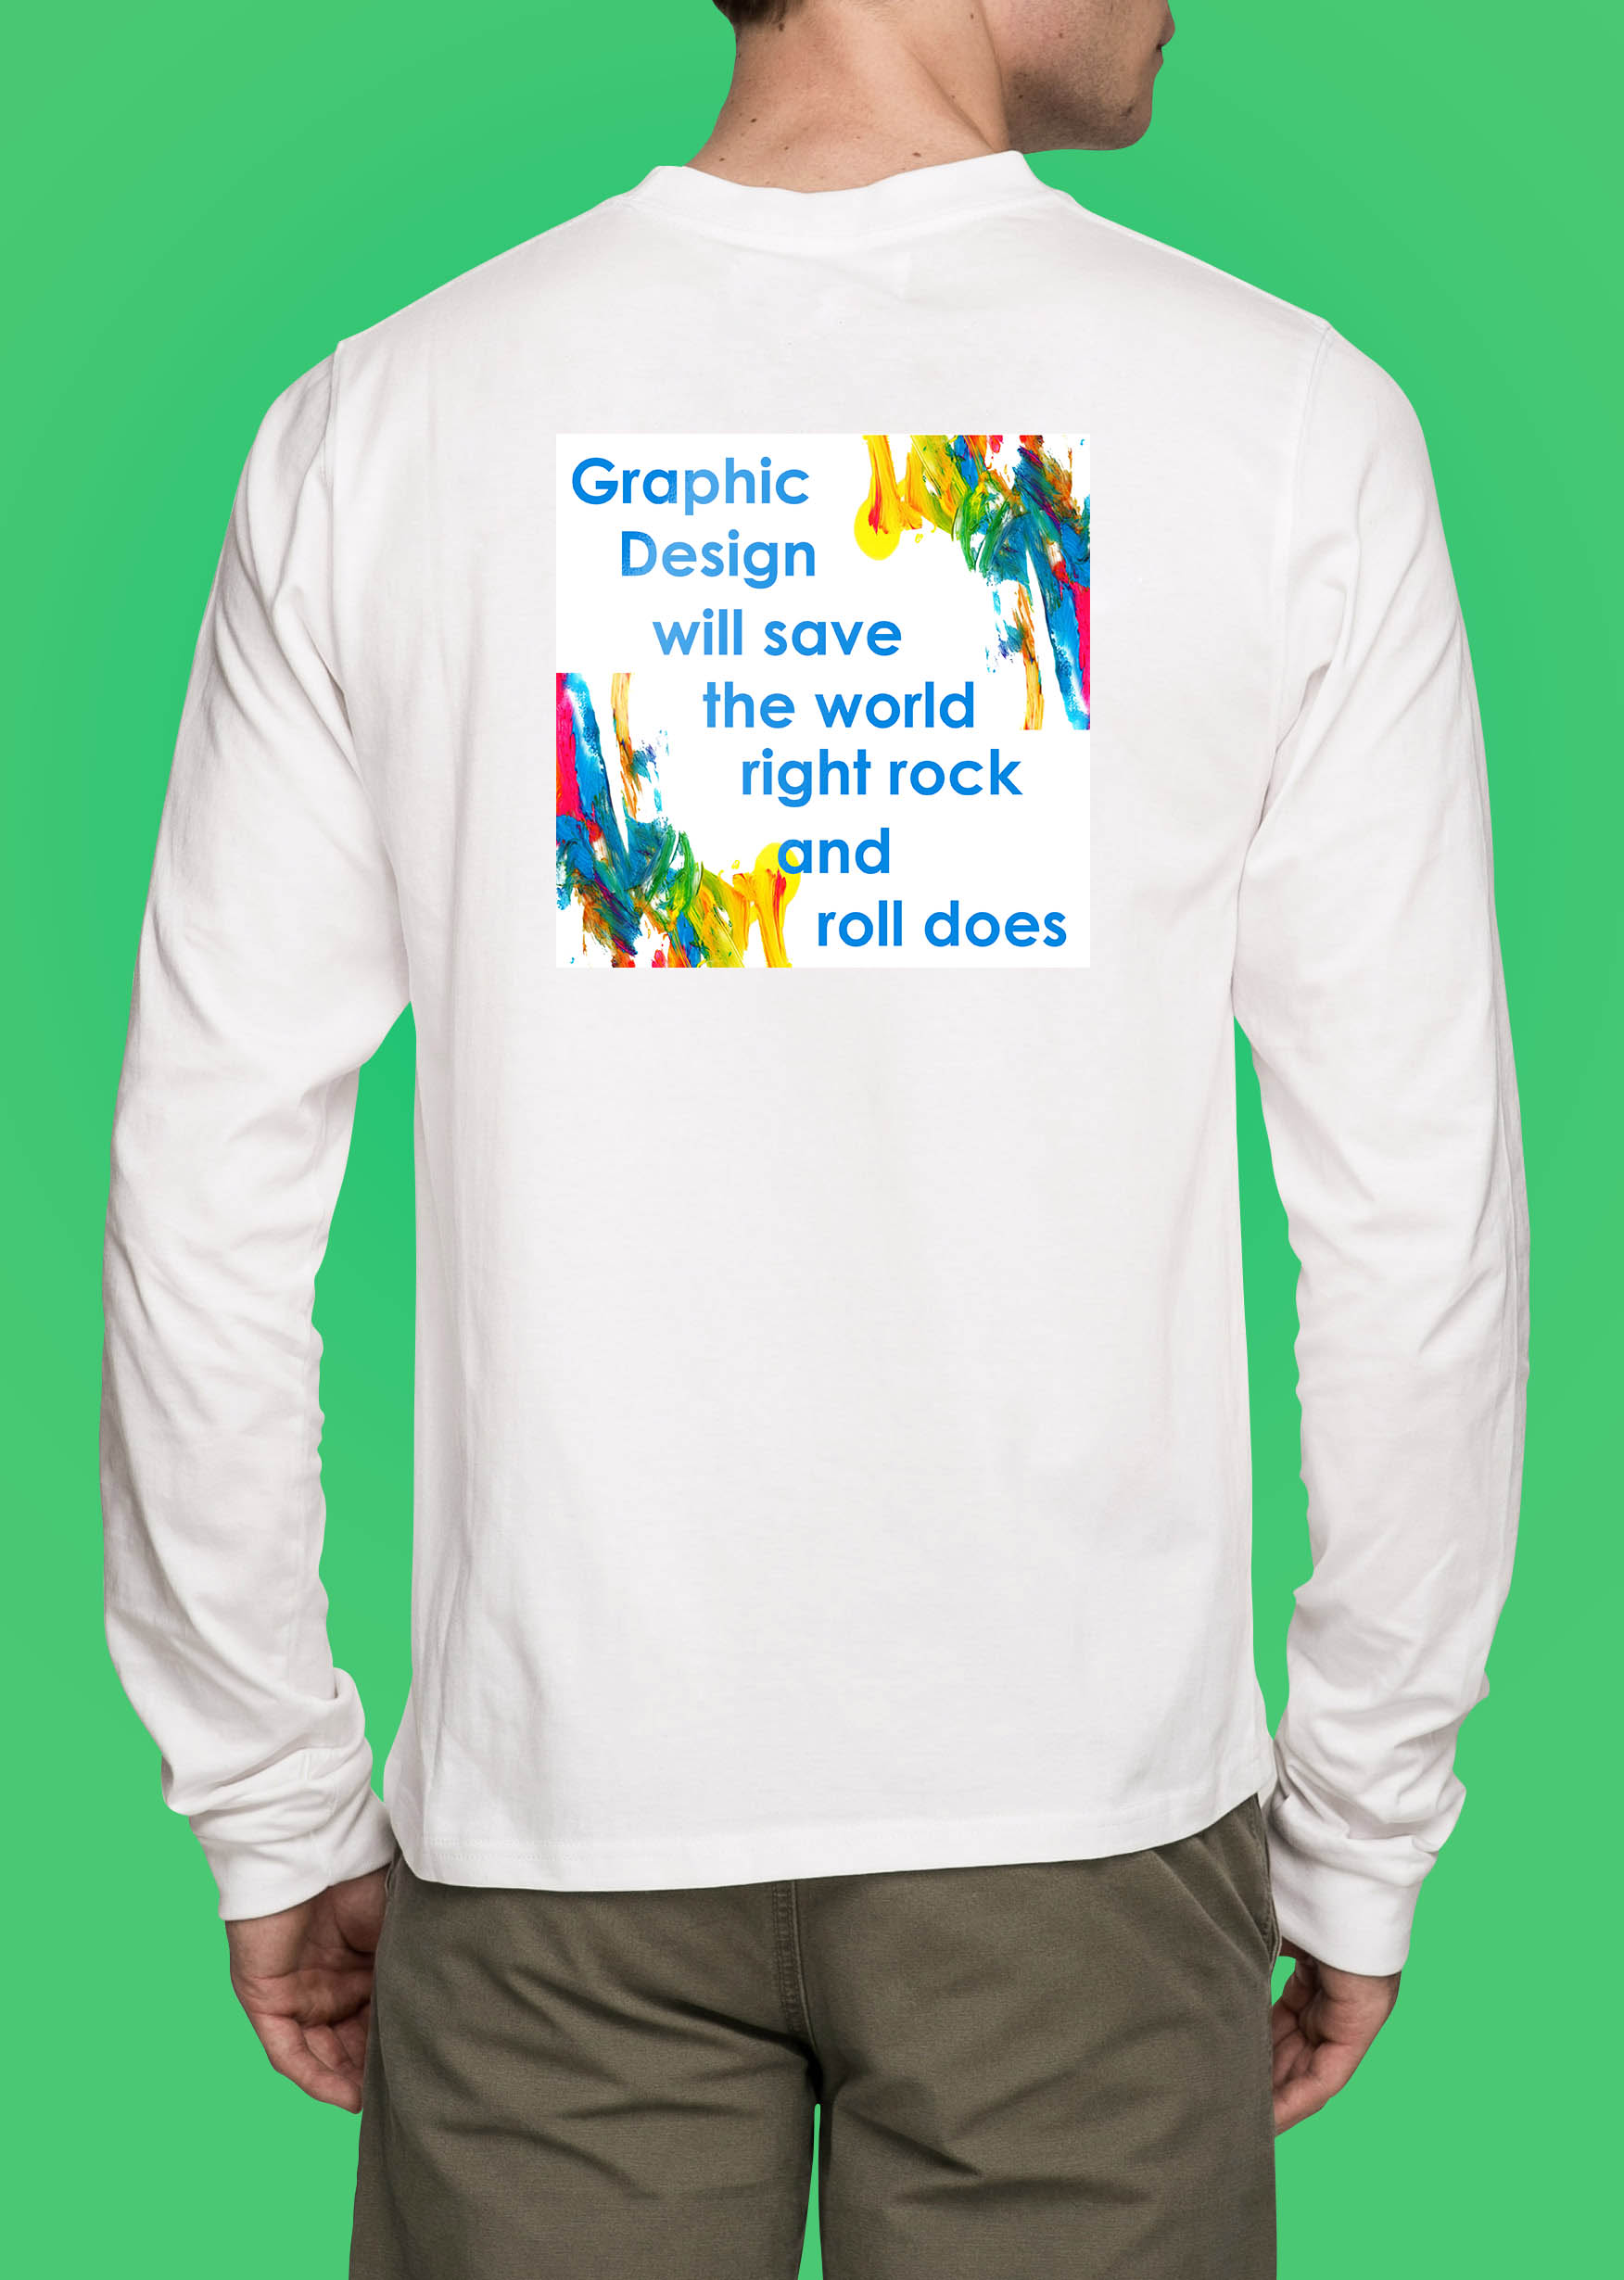 T Shirt Design for you